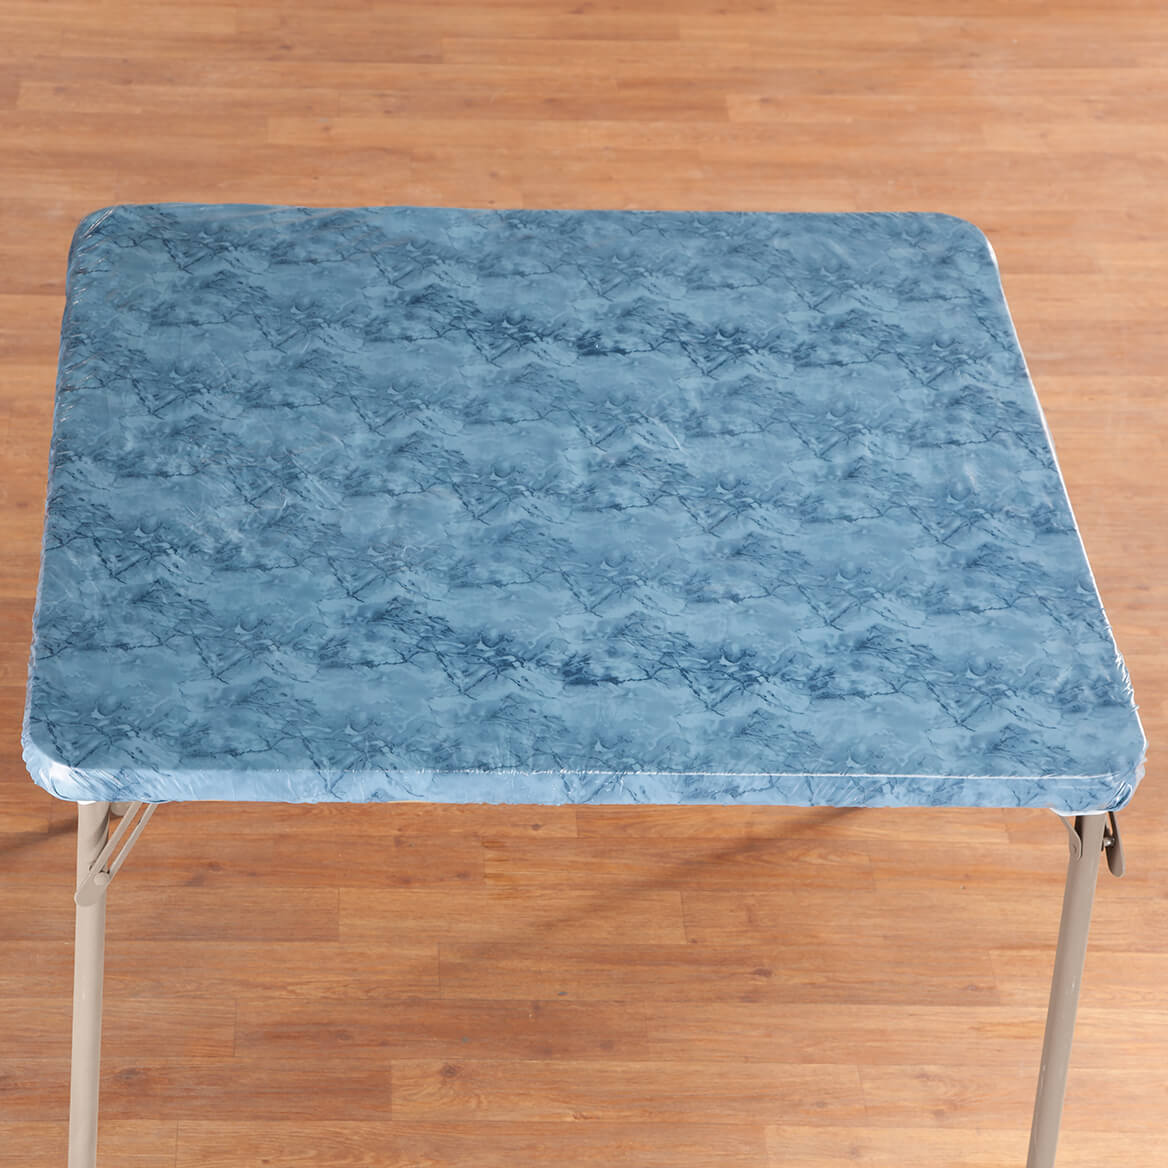 Marbled Elasticized Banquet Tablecover-356493